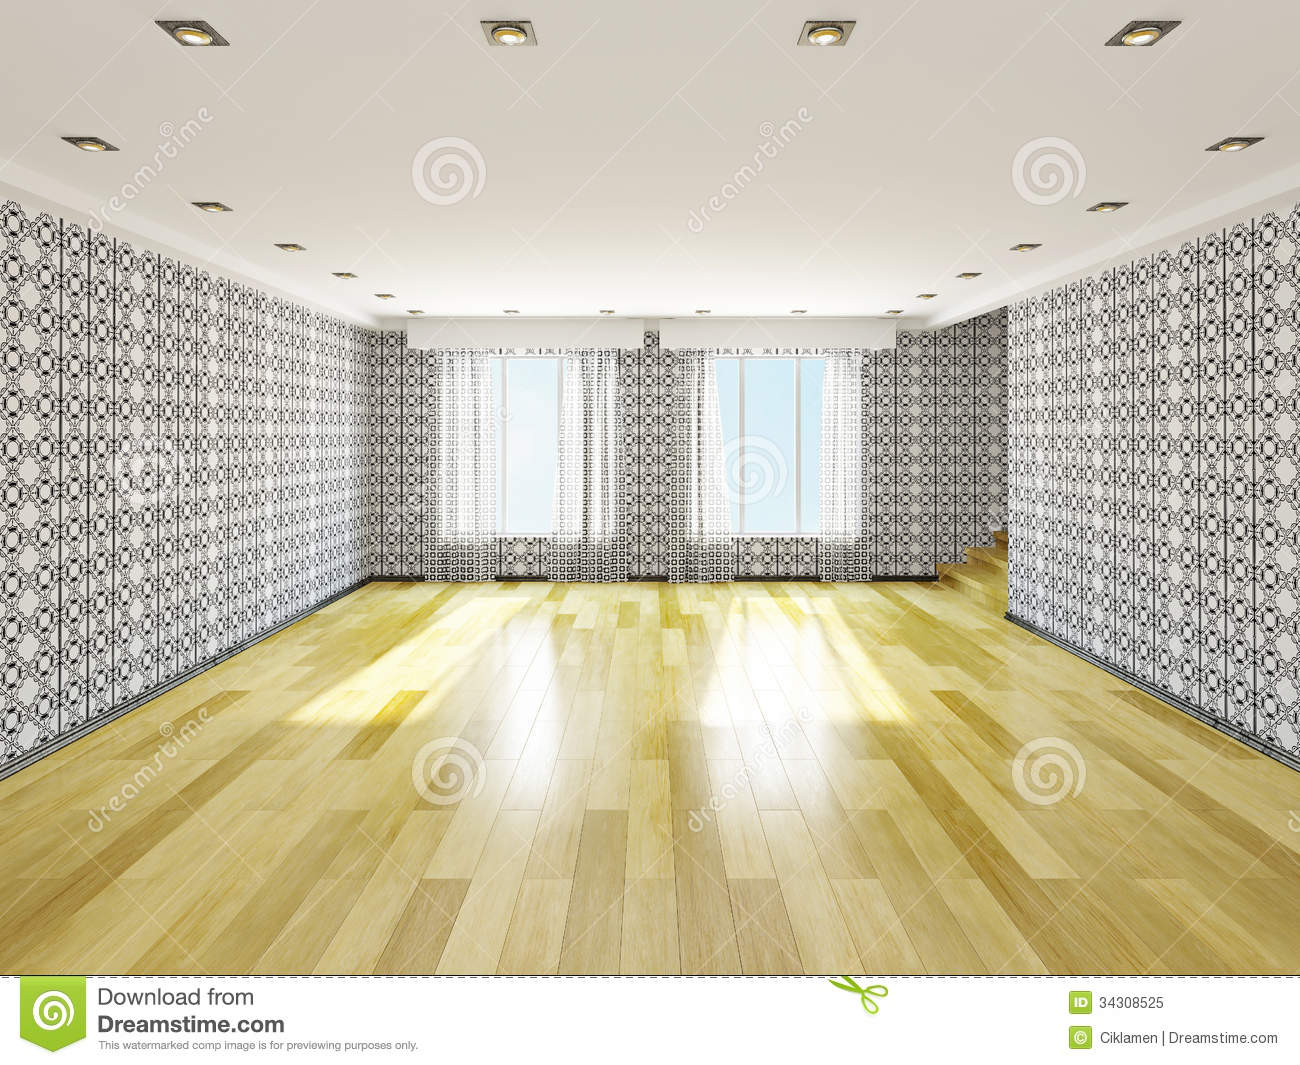 The big empty room stock illustration. Illustration of architecture ...